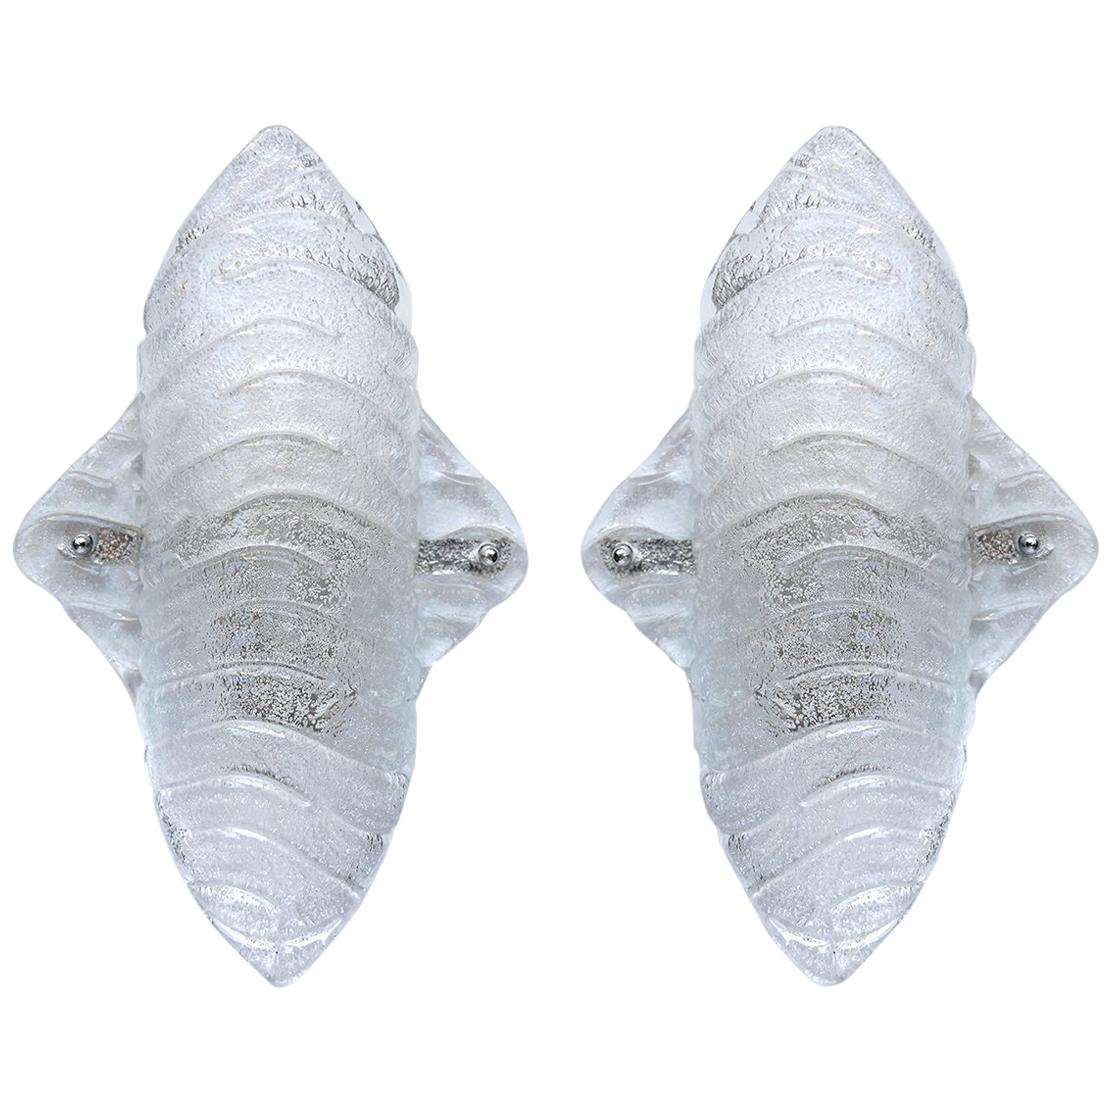 Pair of Austrian Textured Organic Ice Glass Wall Lights Sconces, 1960s